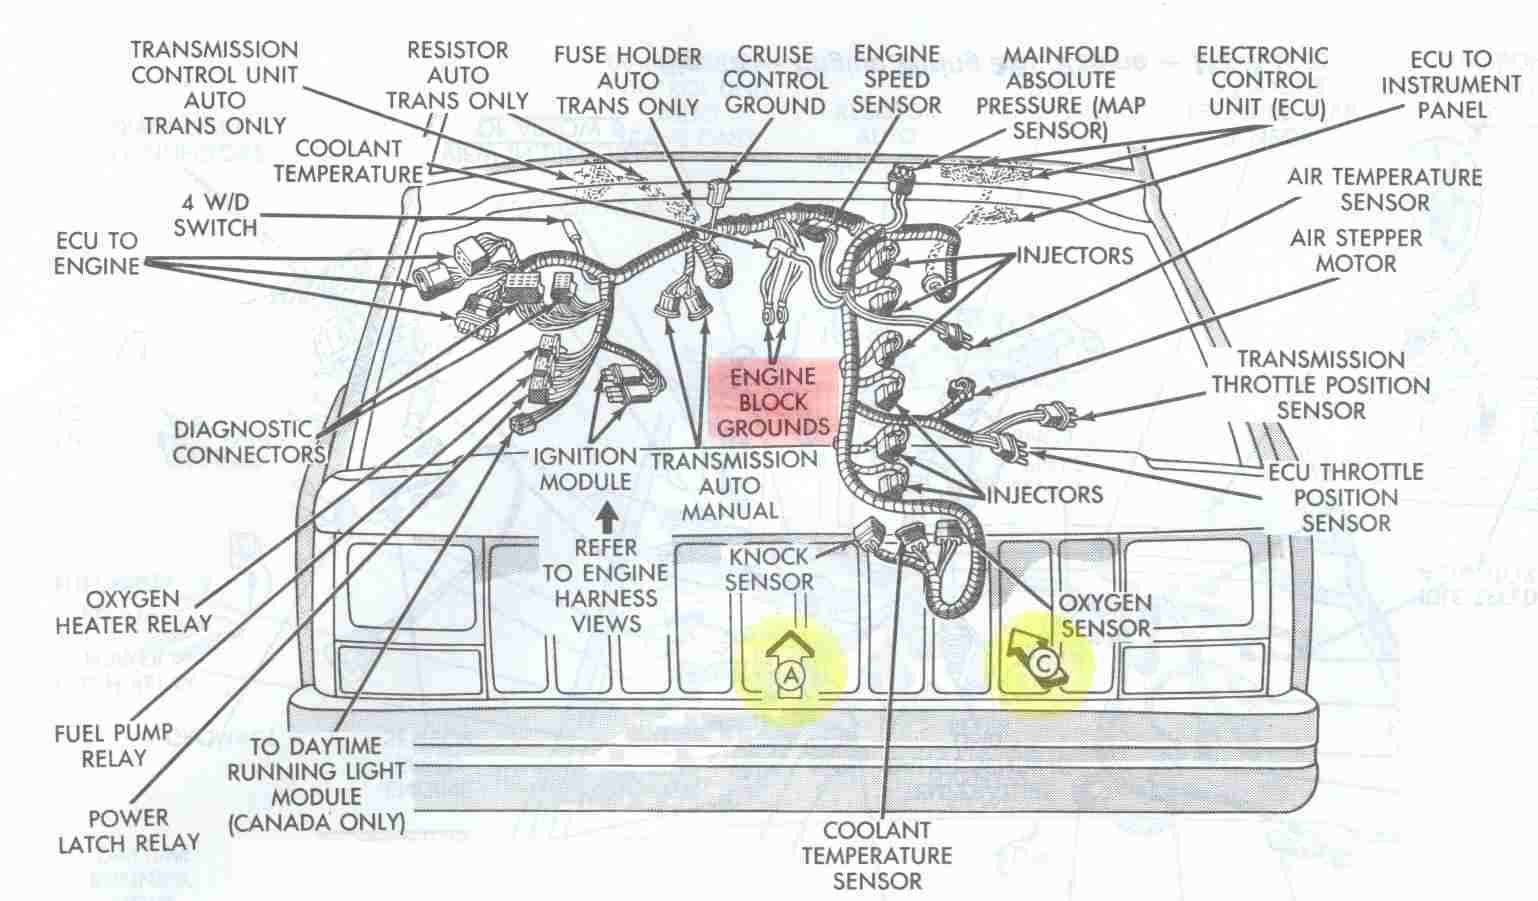 ab0134a7d9e021431187af597eb4aeca engine bay schematic showing major electrical ground points for 2004 jeep wrangler engine diagram at gsmx.co